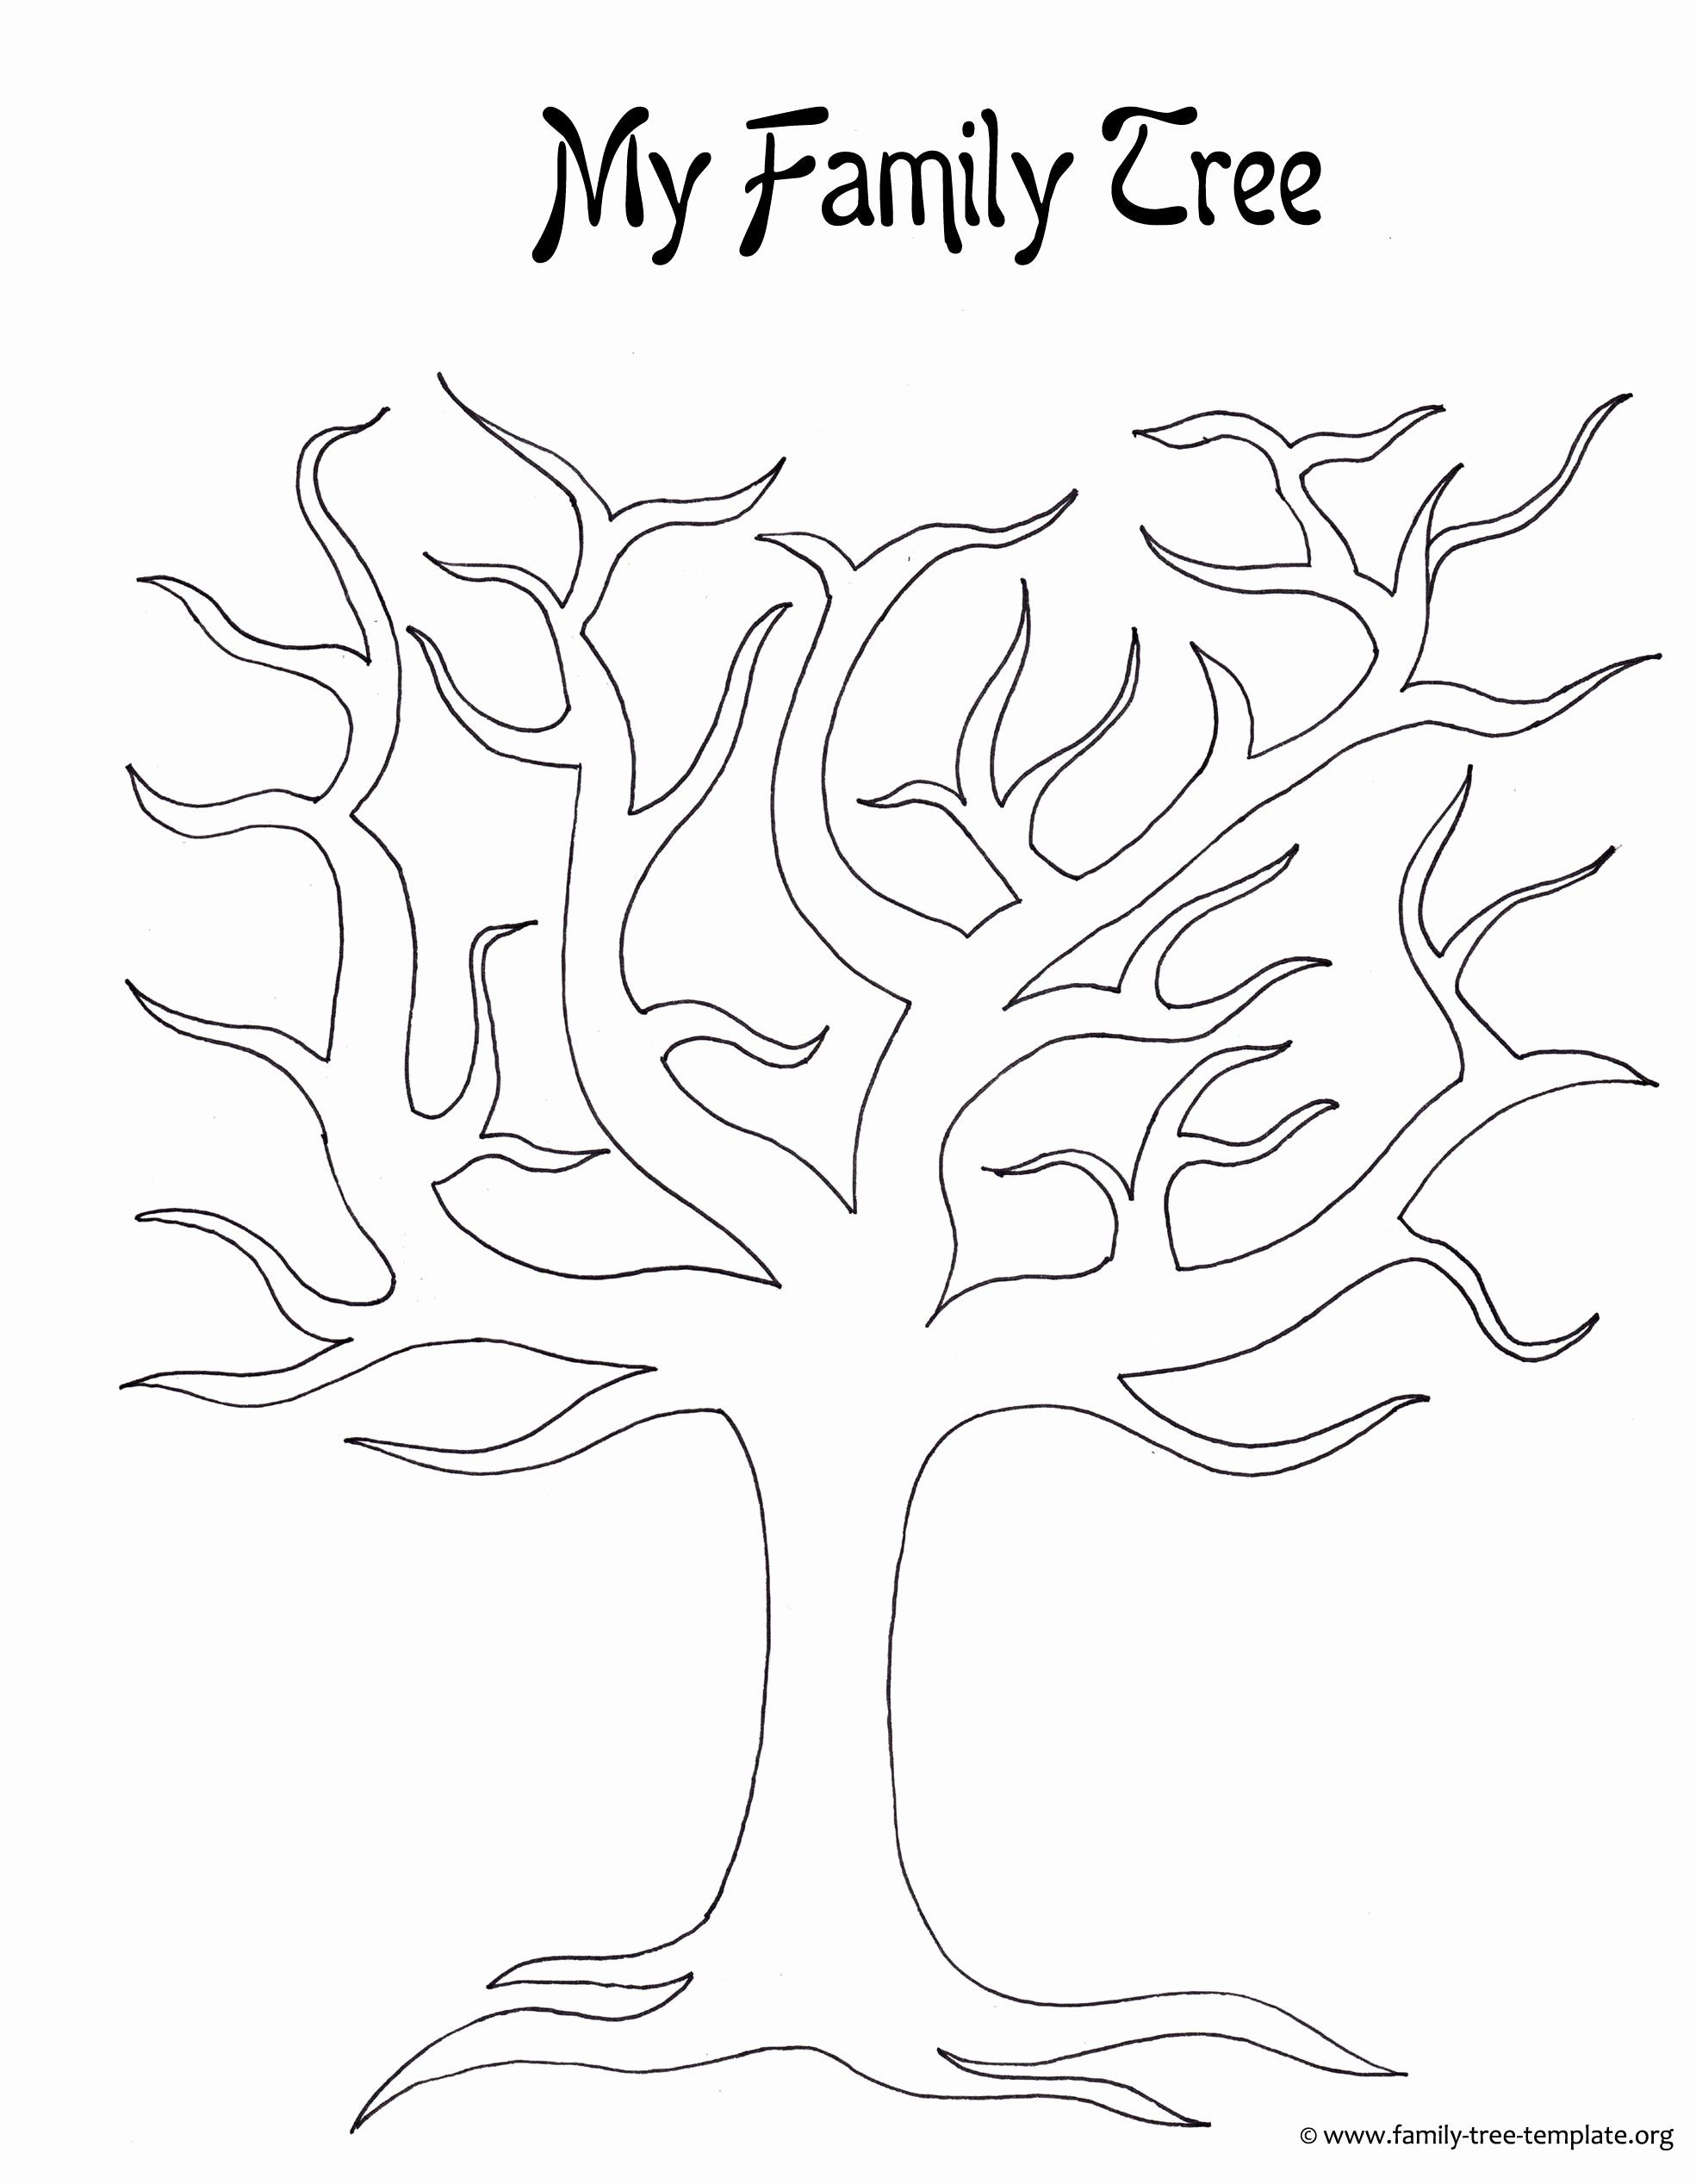 Family History Coloring Book Awesome Family Tree Template With Siblings Aunts Uncles Cousins Uk Family Tree Printable Family Tree Template Blank Family Tree